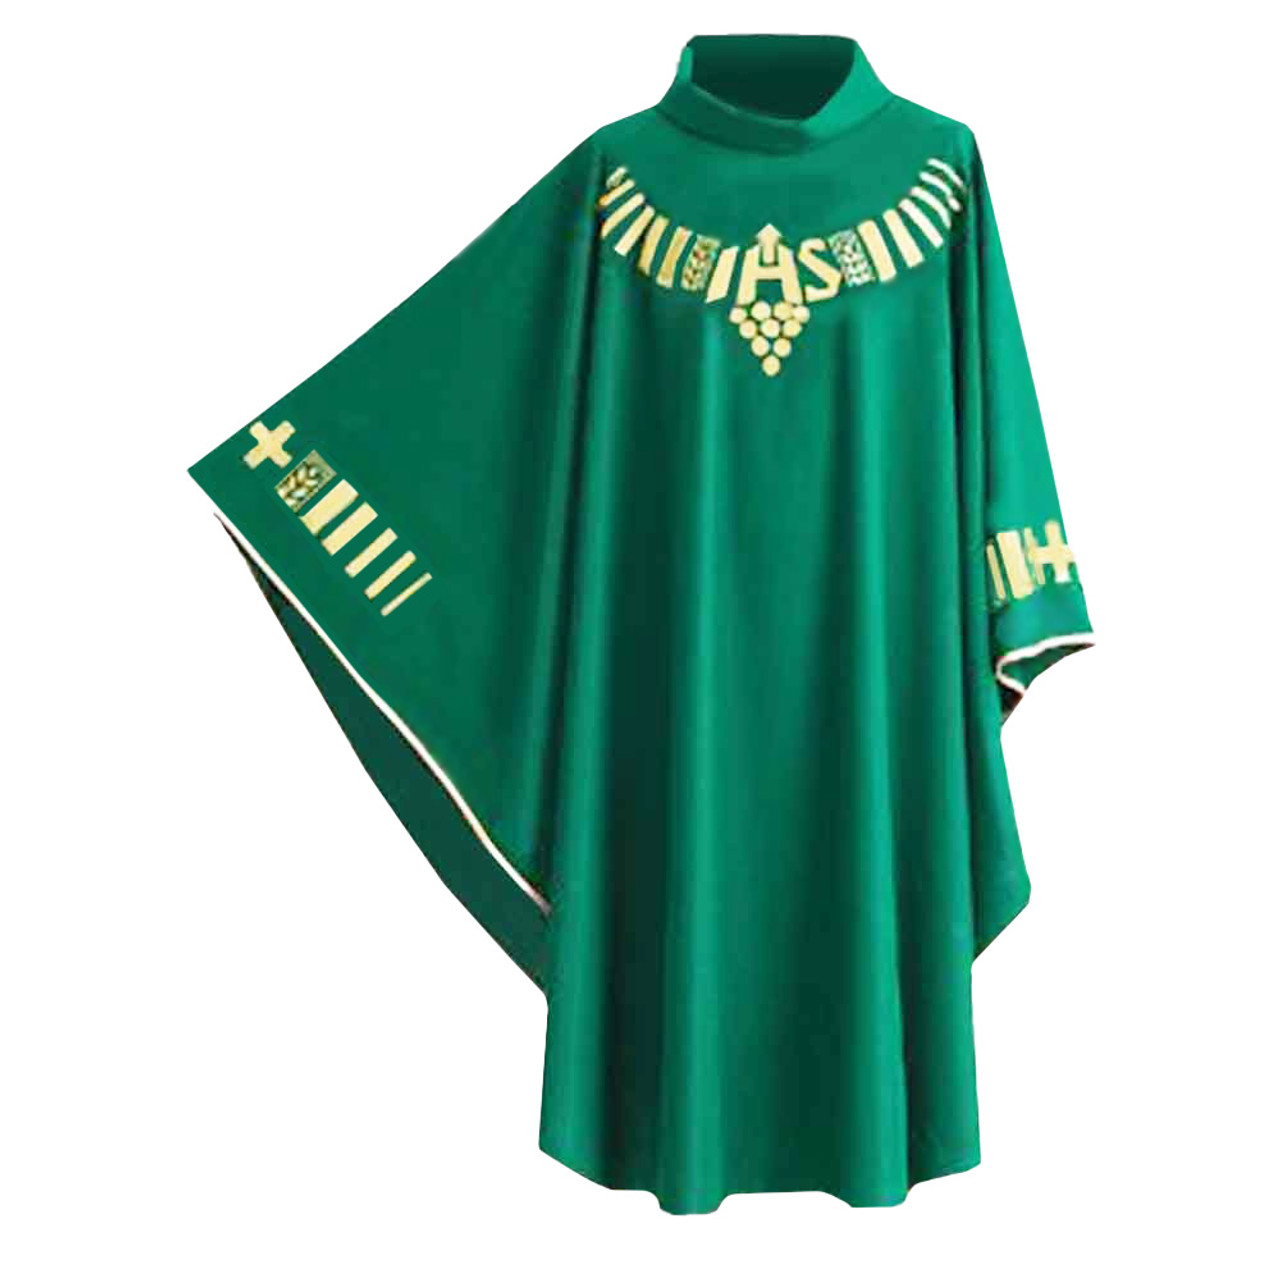 A19/1141 Green Chasuble from Hayes & Finch